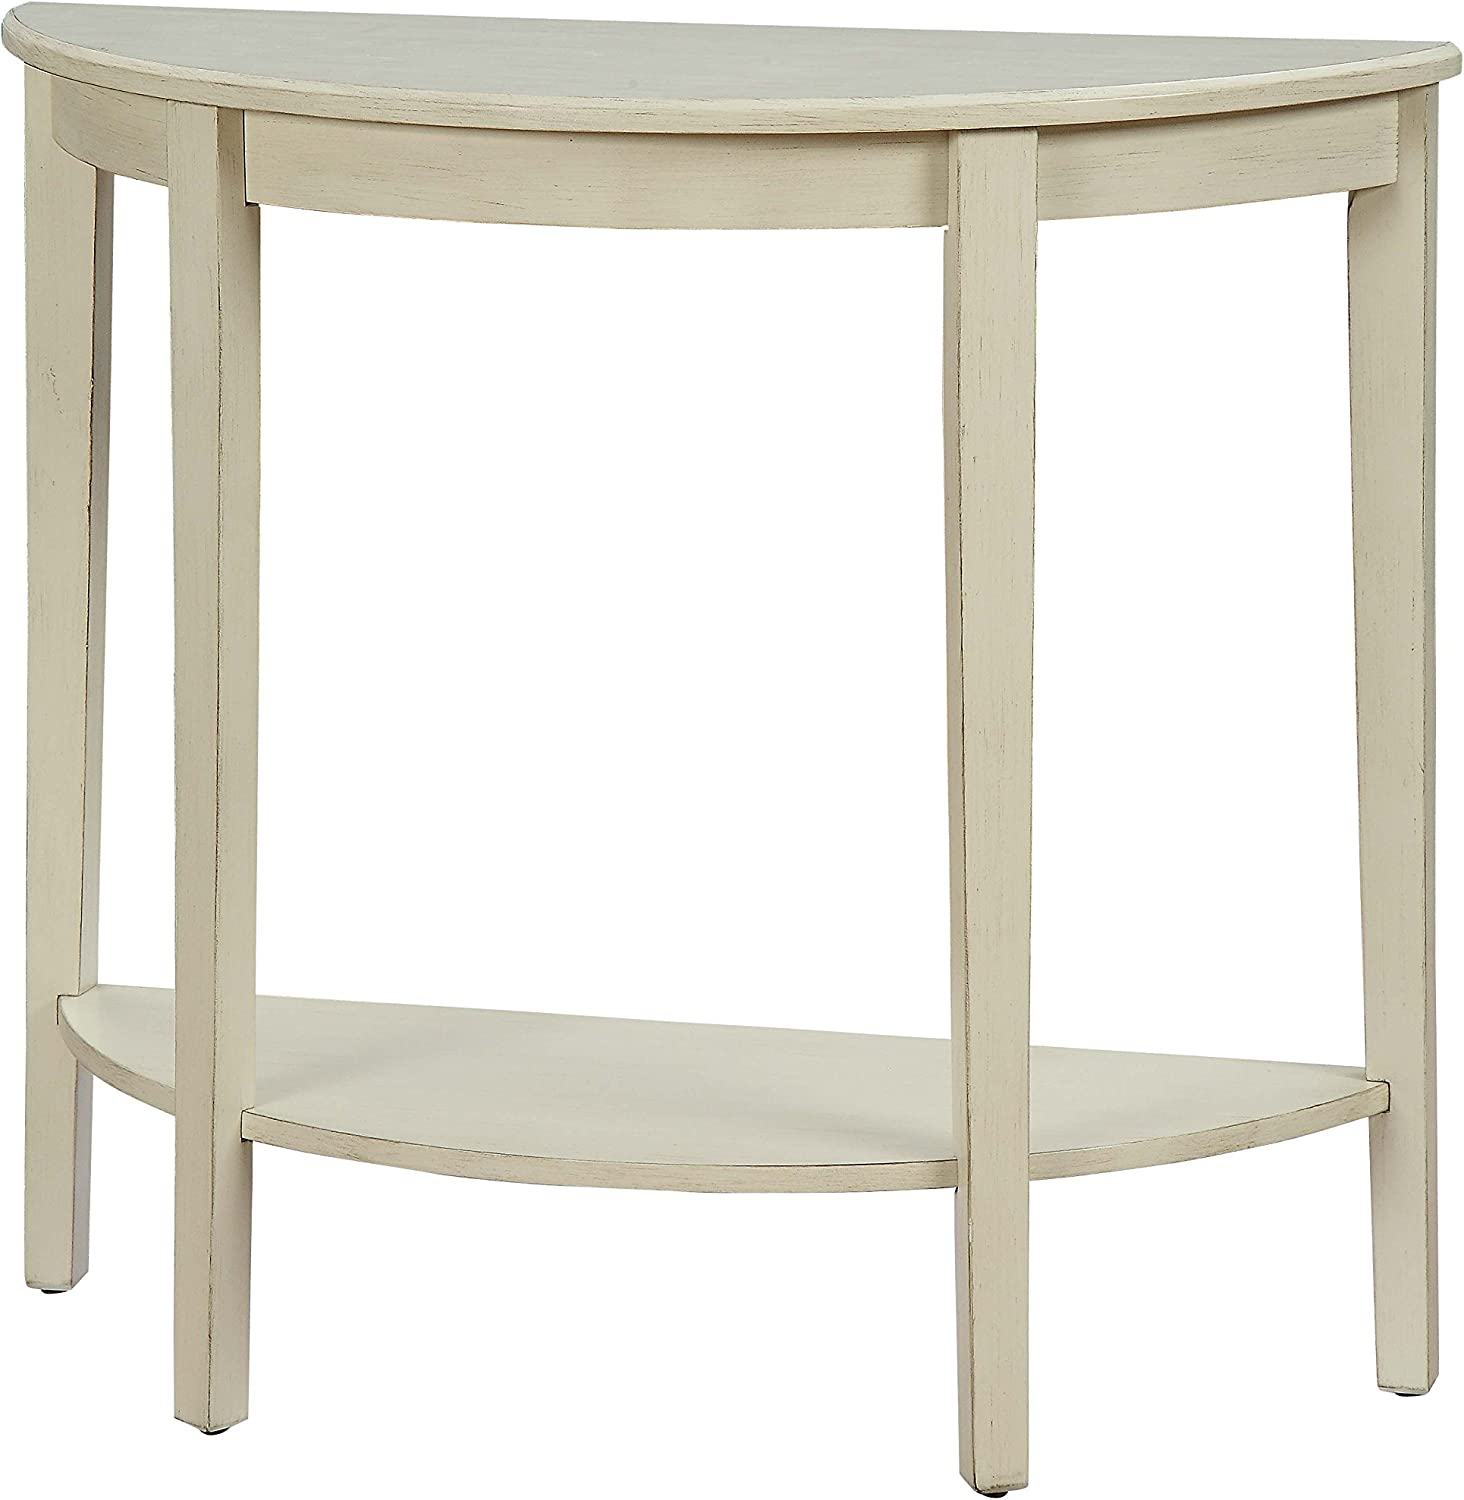 ACME Justino II Console Table - - Antique White